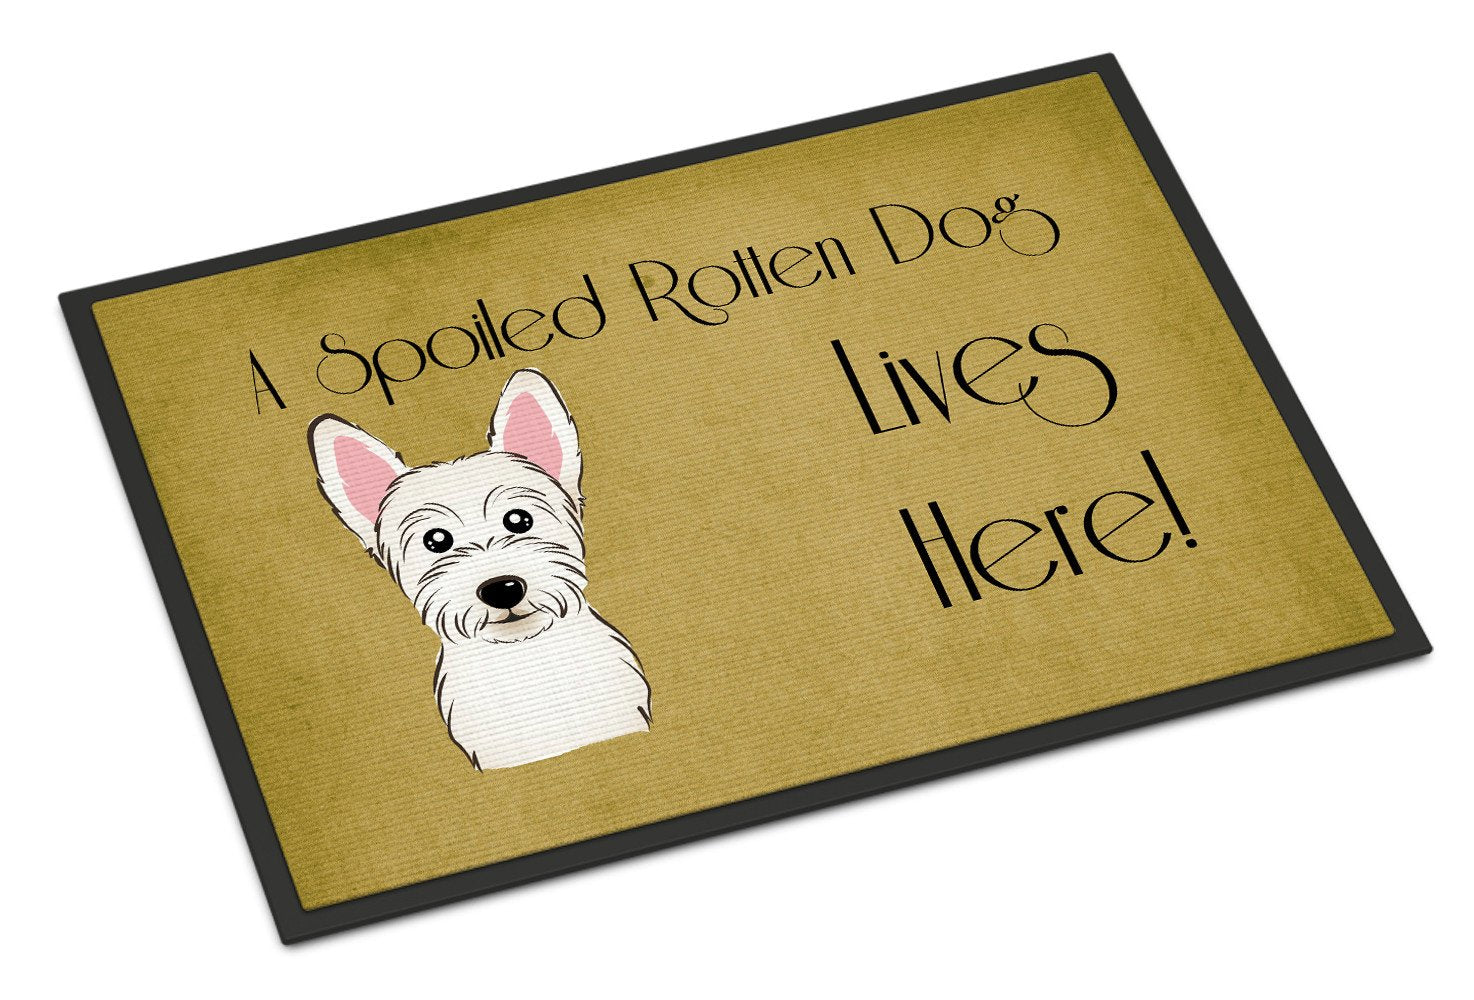 Westie Spoiled Dog Lives Here Indoor or Outdoor Mat 18x27 BB1474MAT - the-store.com